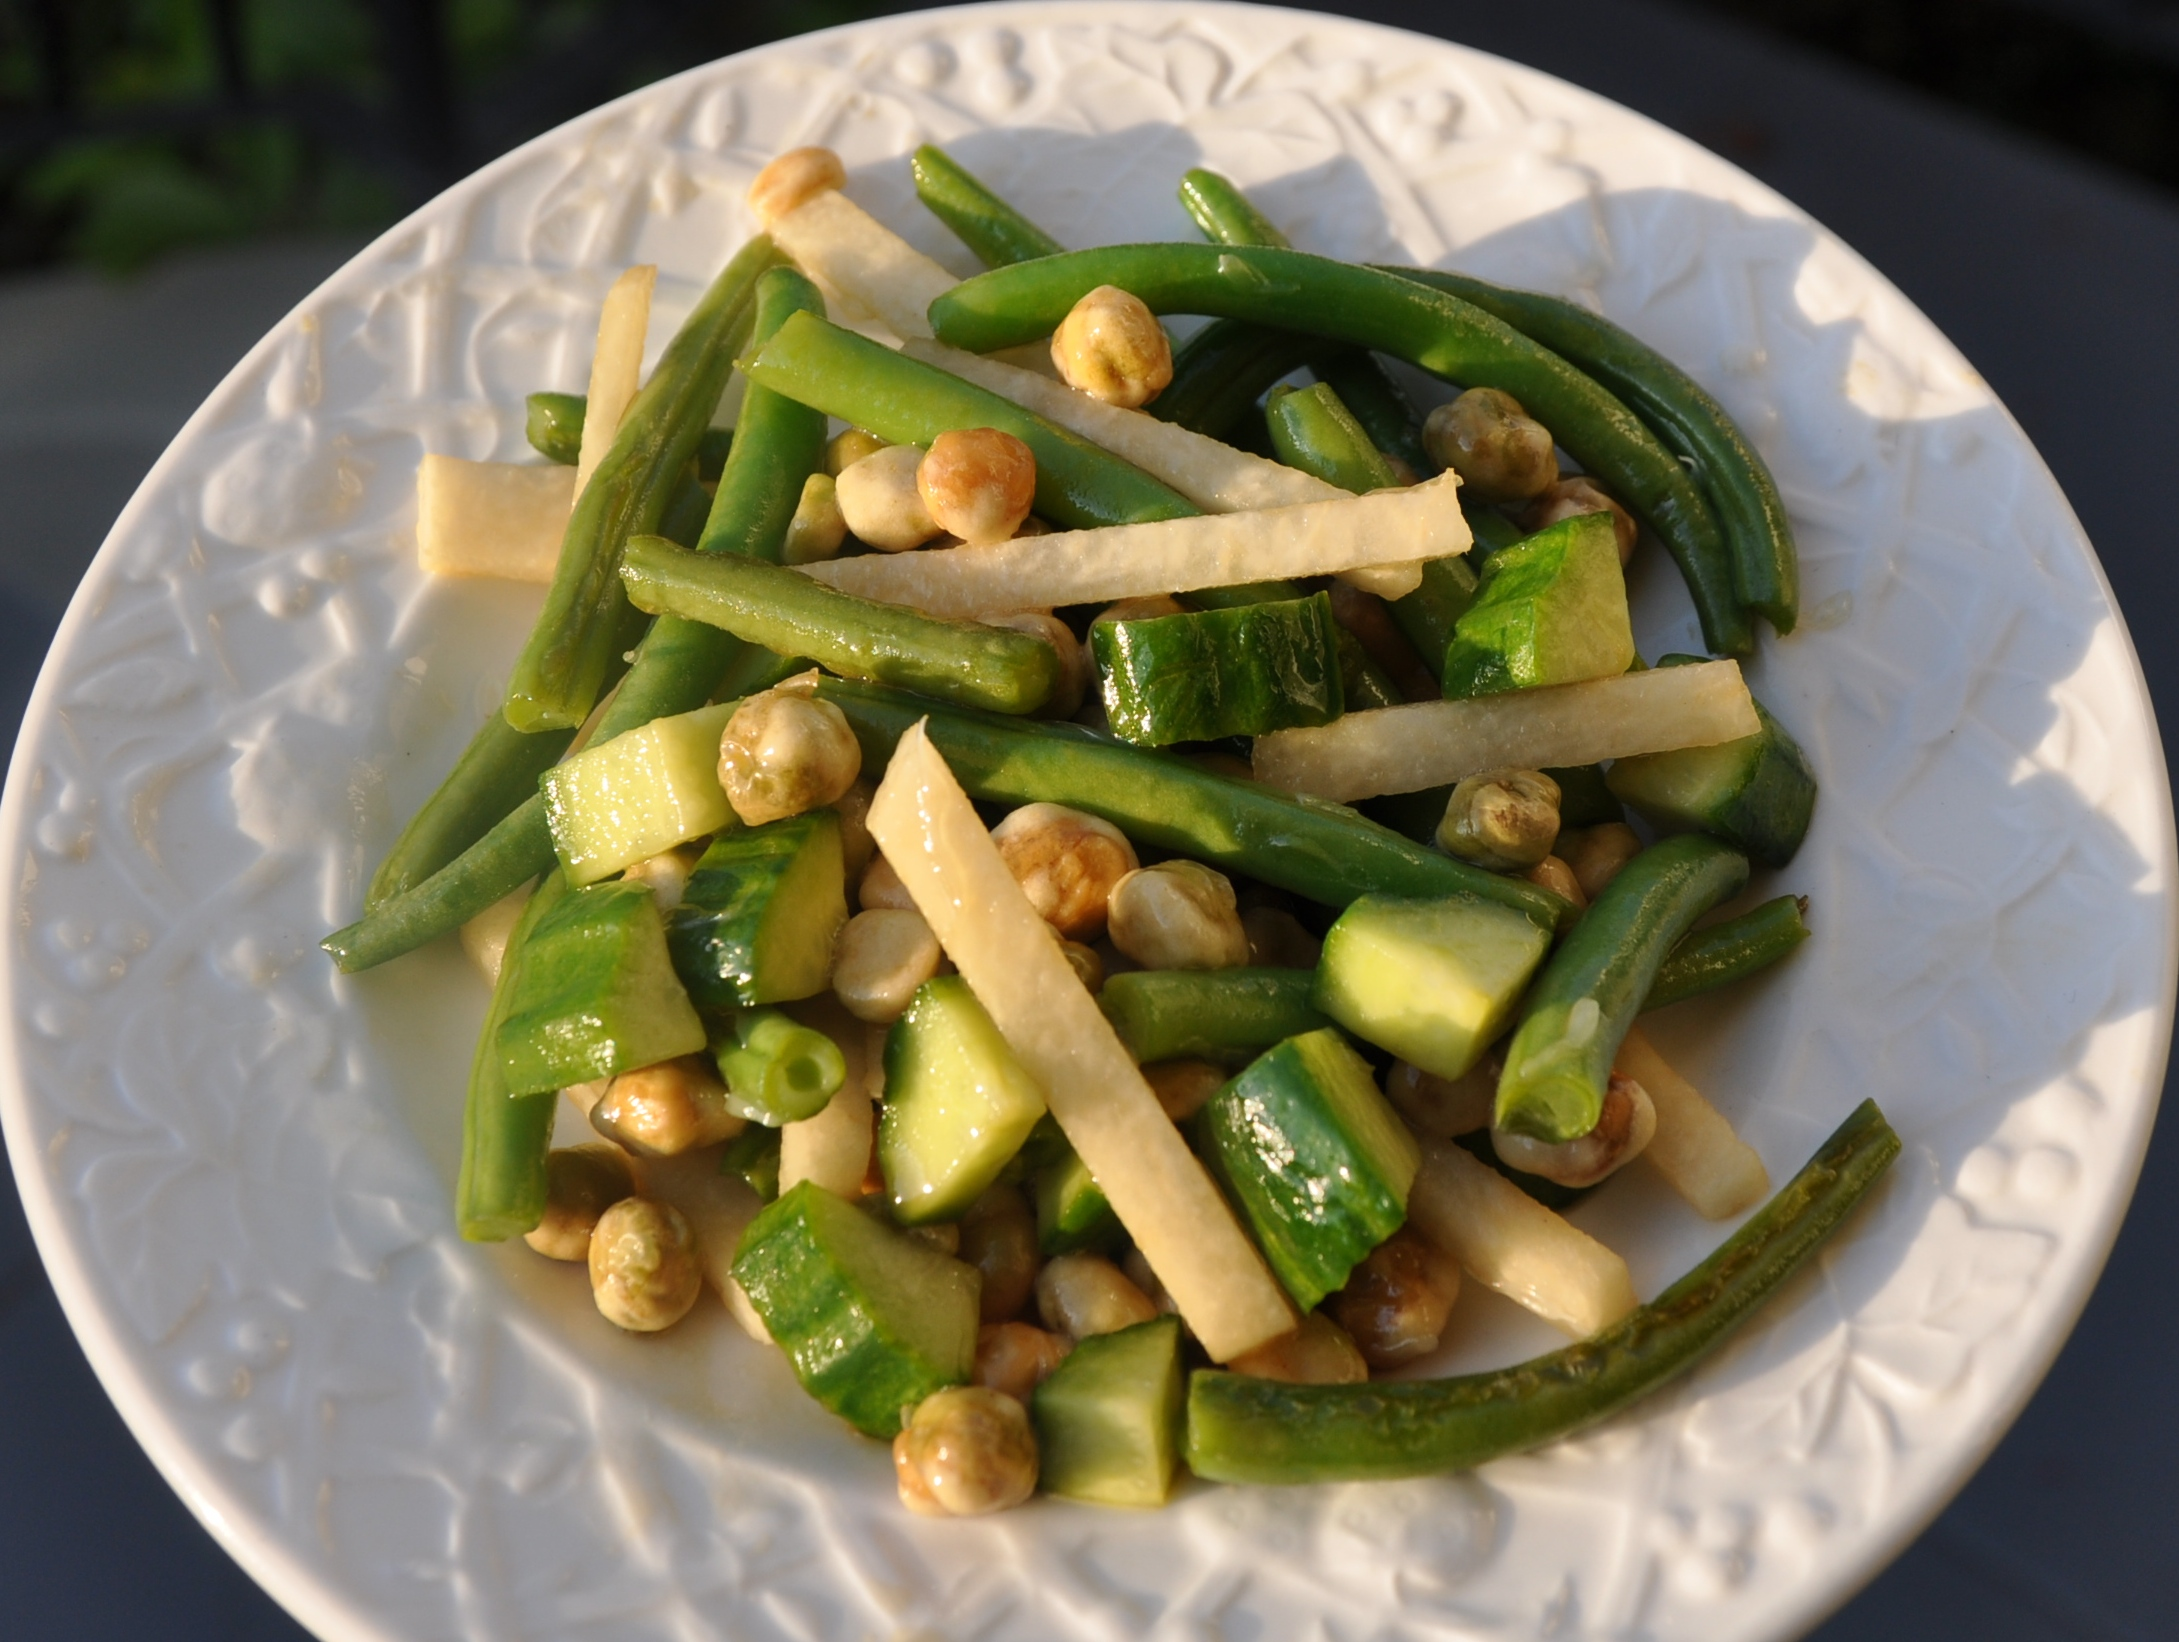 ... green bean salad lemony green bean salad with lemony green bean salad